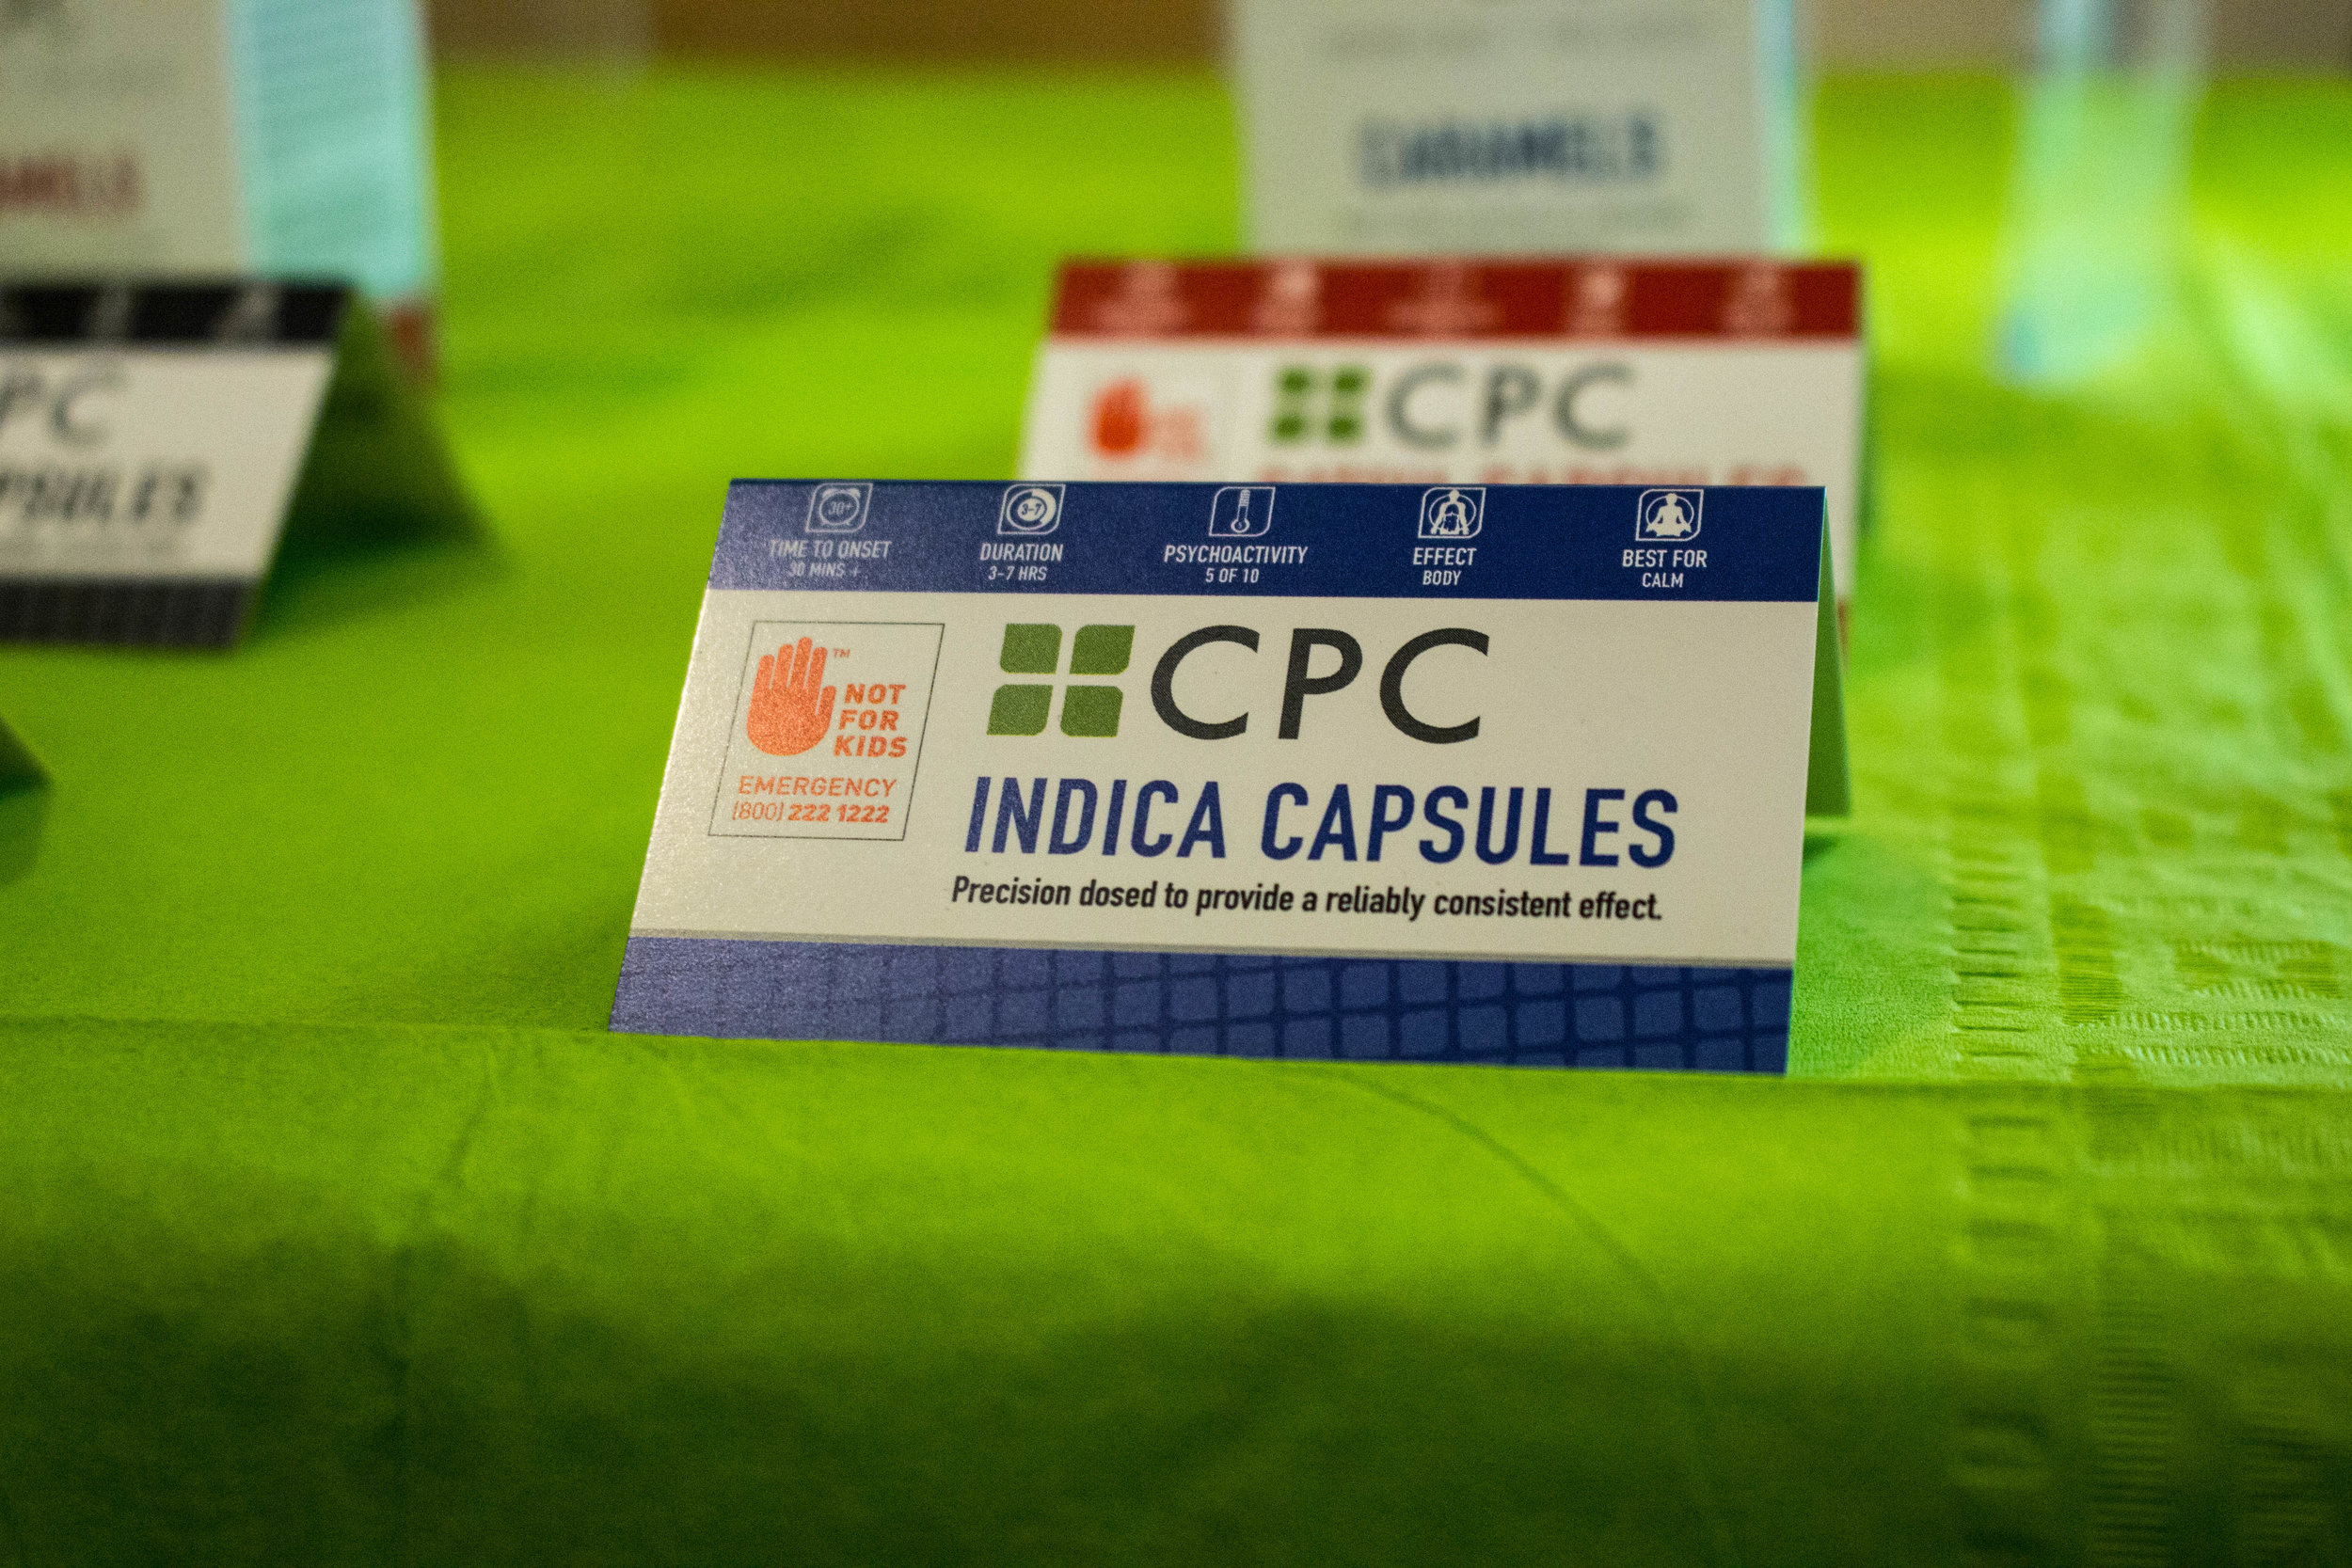 The CPC Indica Cannabis Capsule Packaging